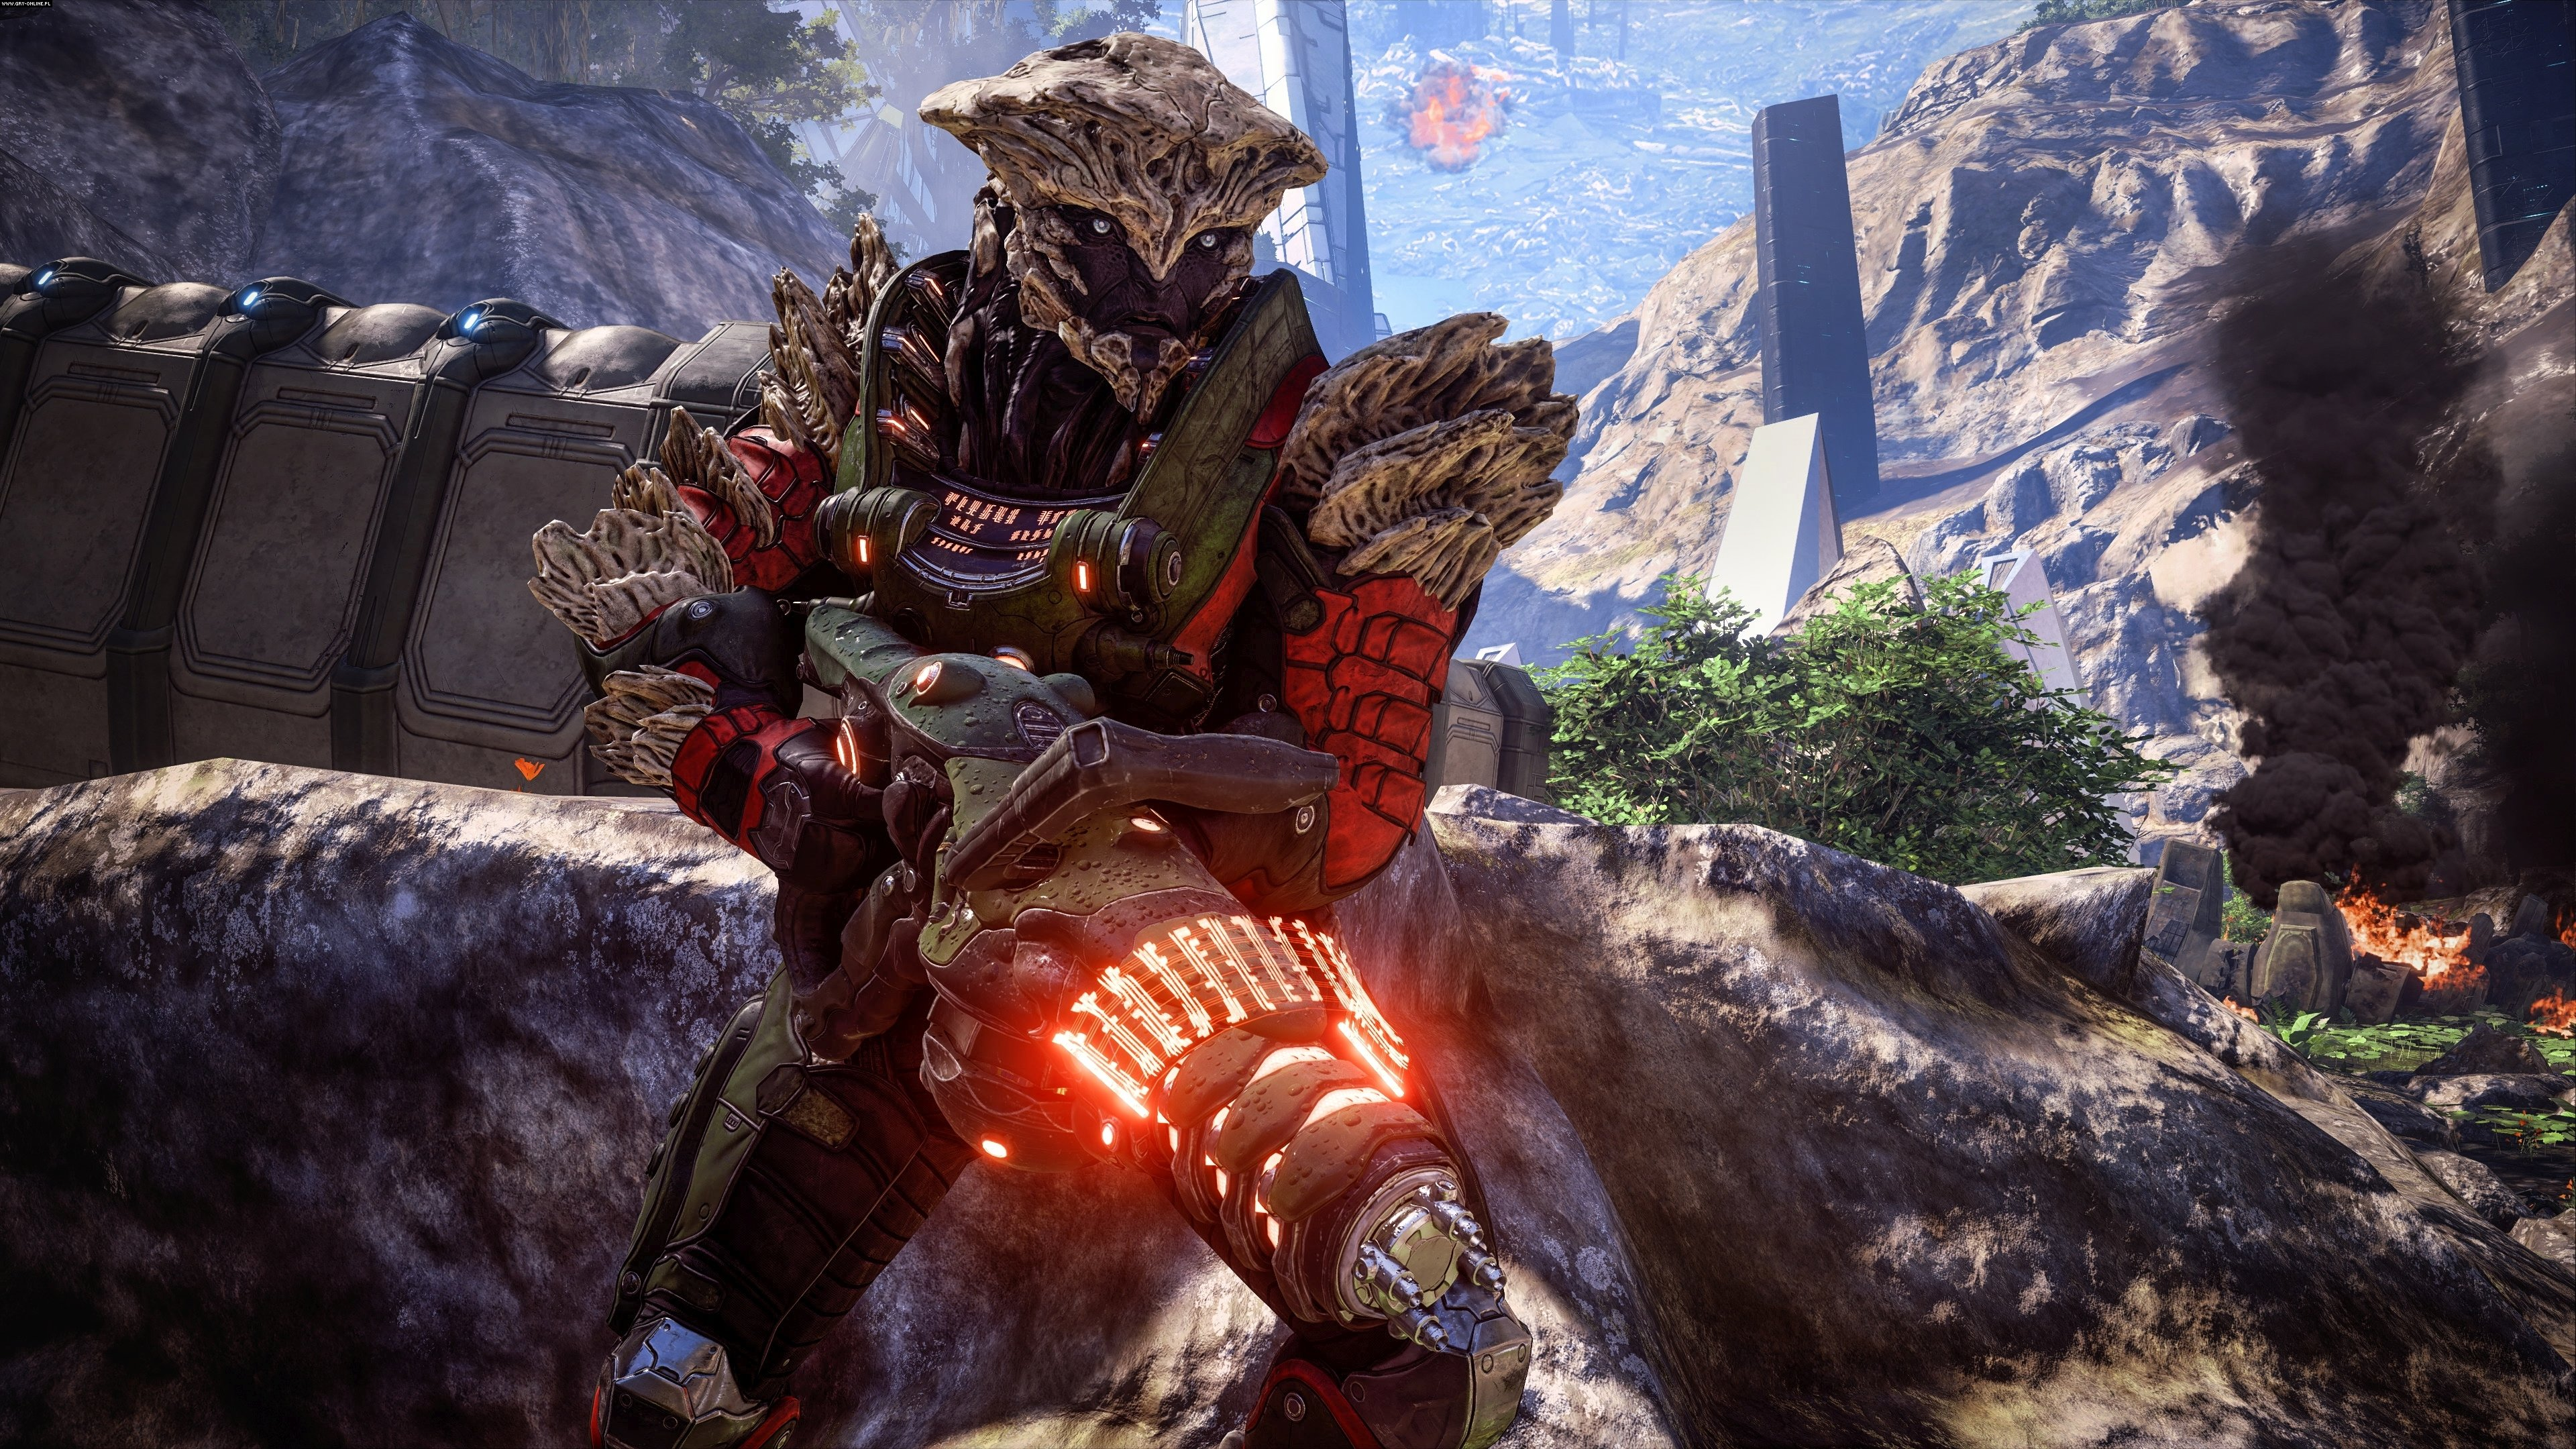 Mass Effect: Andromeda PC, PS4 Games Image 1/140, BioWare Corporation, Electronic Arts Inc.